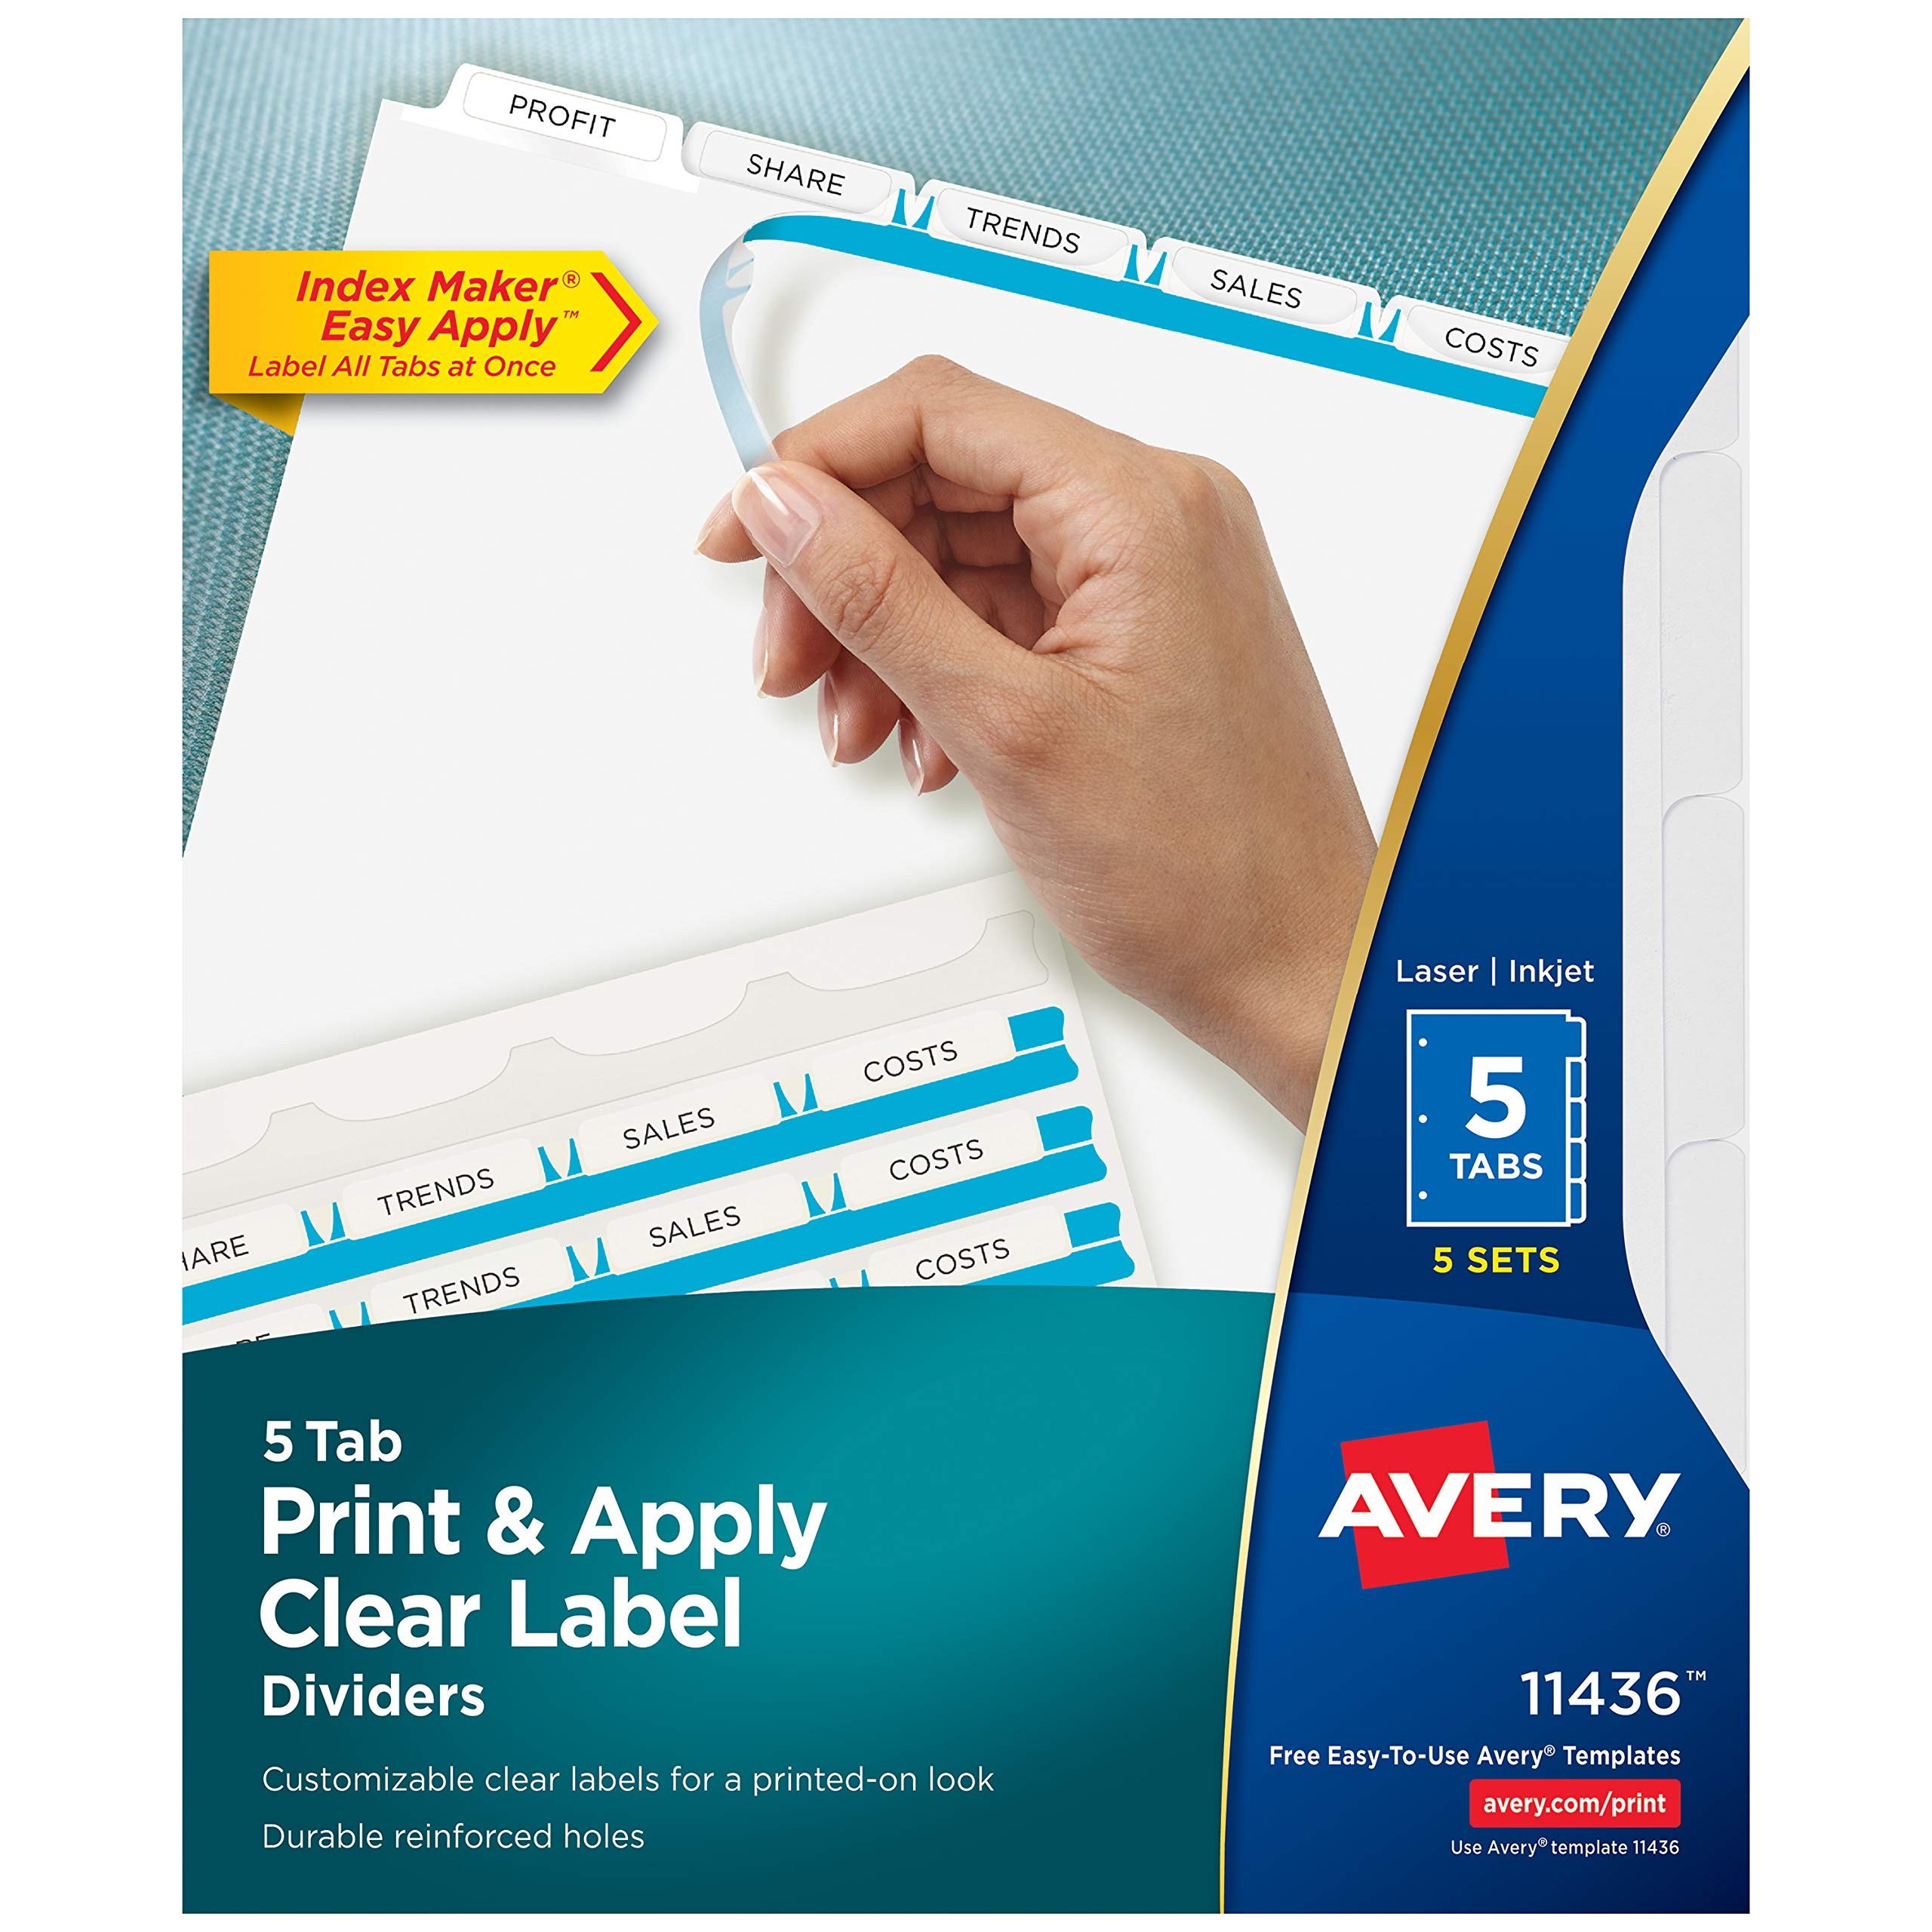 Avery 5-Tab Binder Dividers, Easy Print & Apply Clear Label Strip, Index Maker, White Tabs, 5 Sets (11436) by Avery